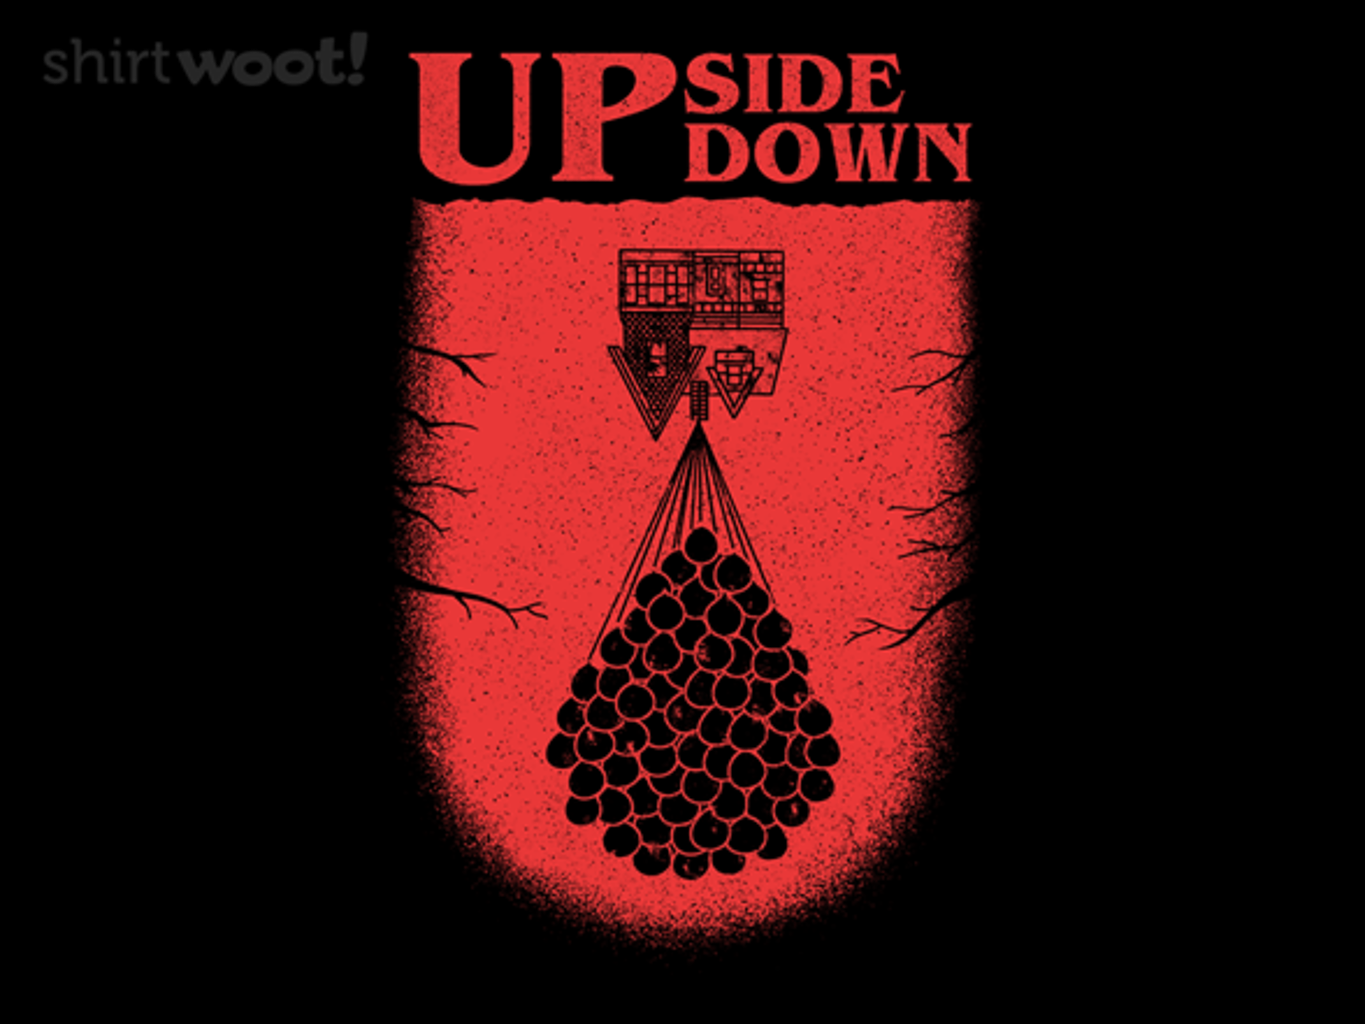 Woot!: The Downside Up